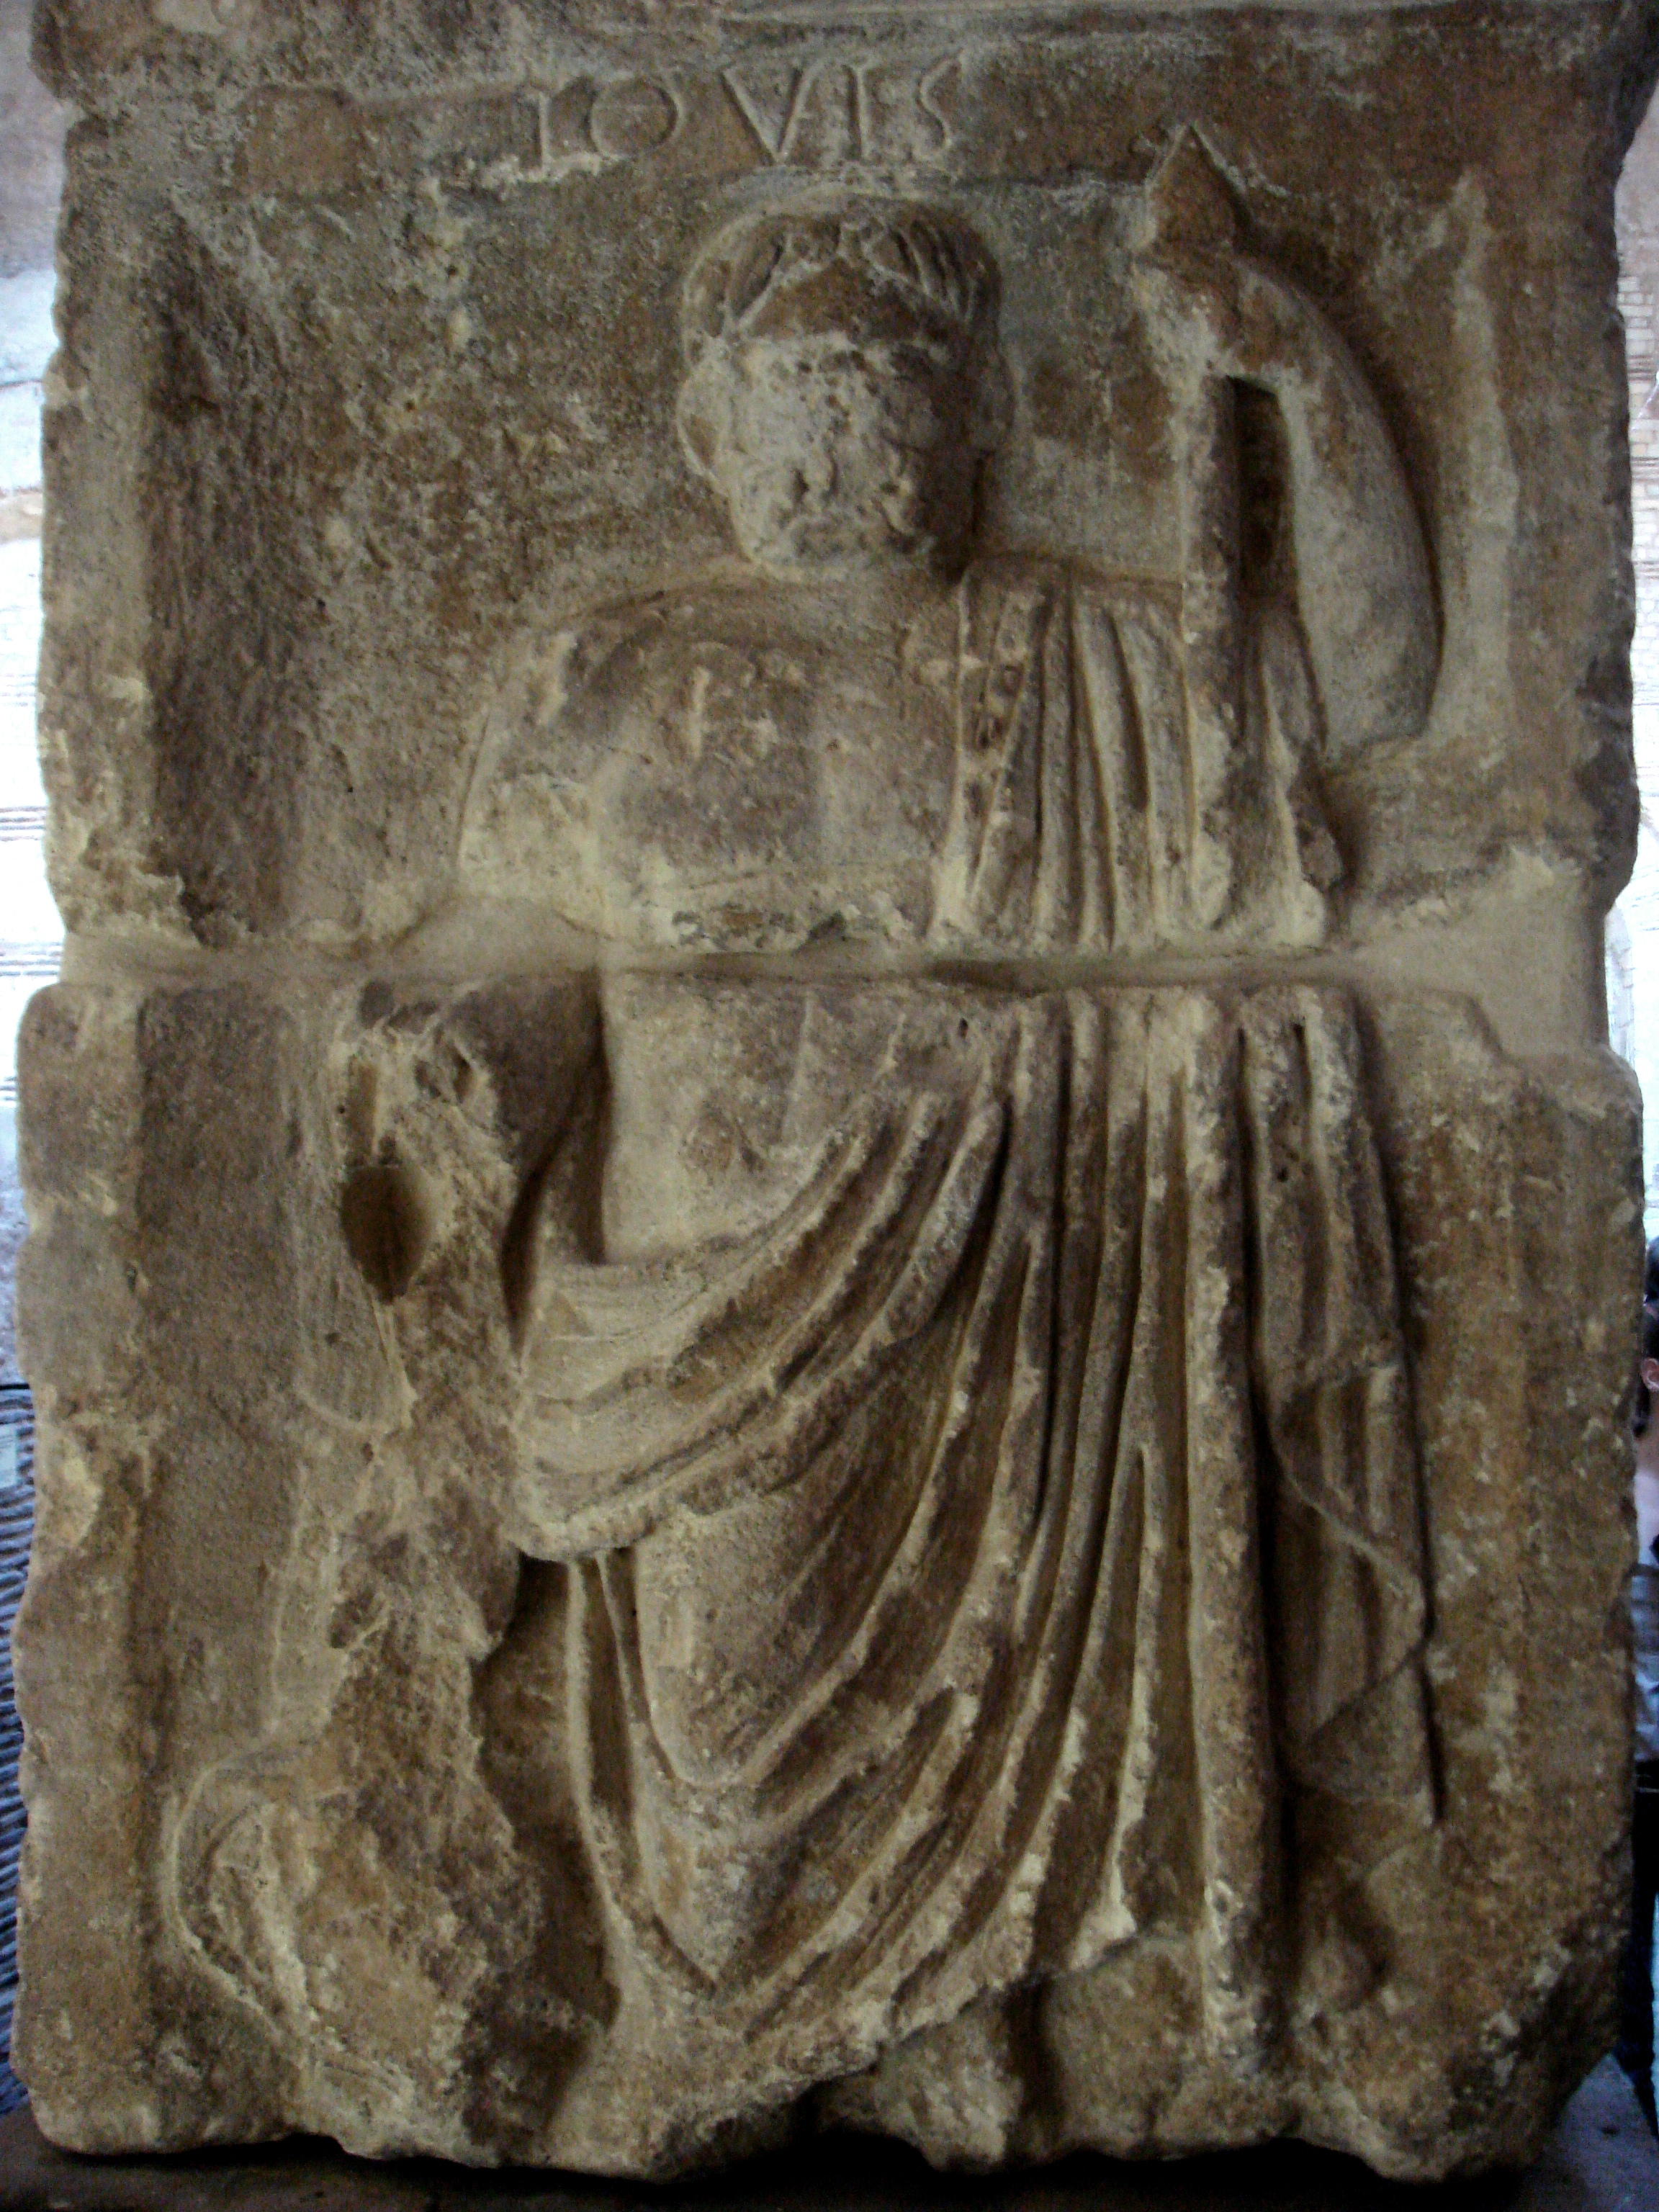 Storm gods in a familiar example: Roman father of the gods Jupiter, wielder of the thunderbolt! Image Credit PHGCOM (Public Domain) via Wikimedia Commons.